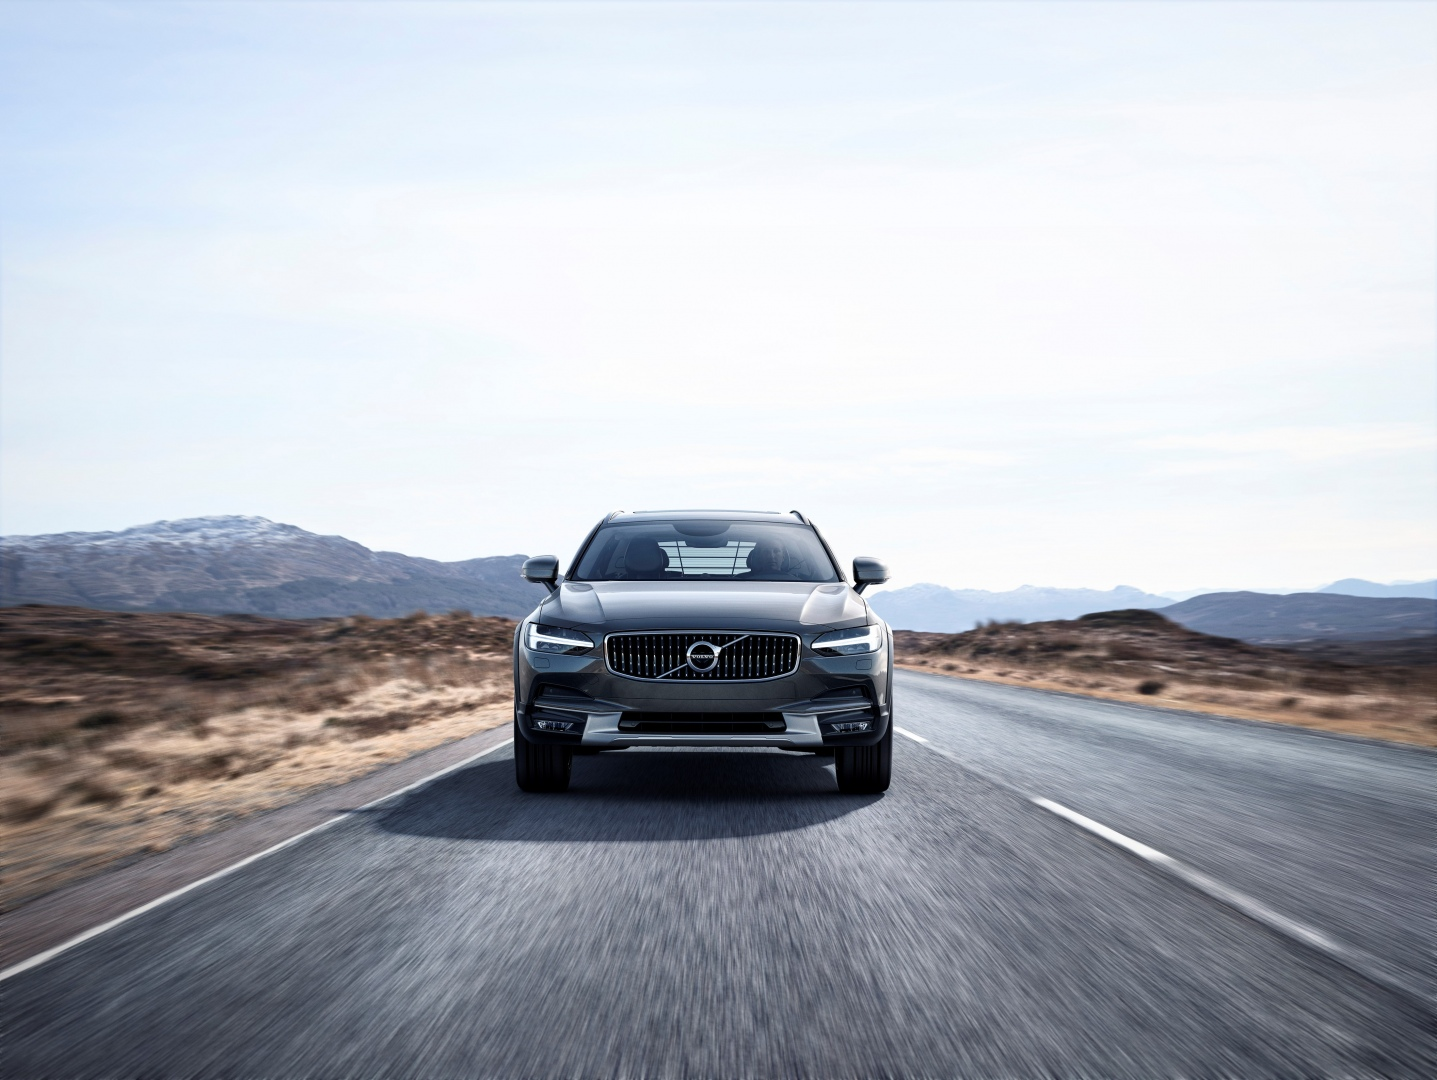 198312_New_Volvo_V90_Cross_Country_Driving